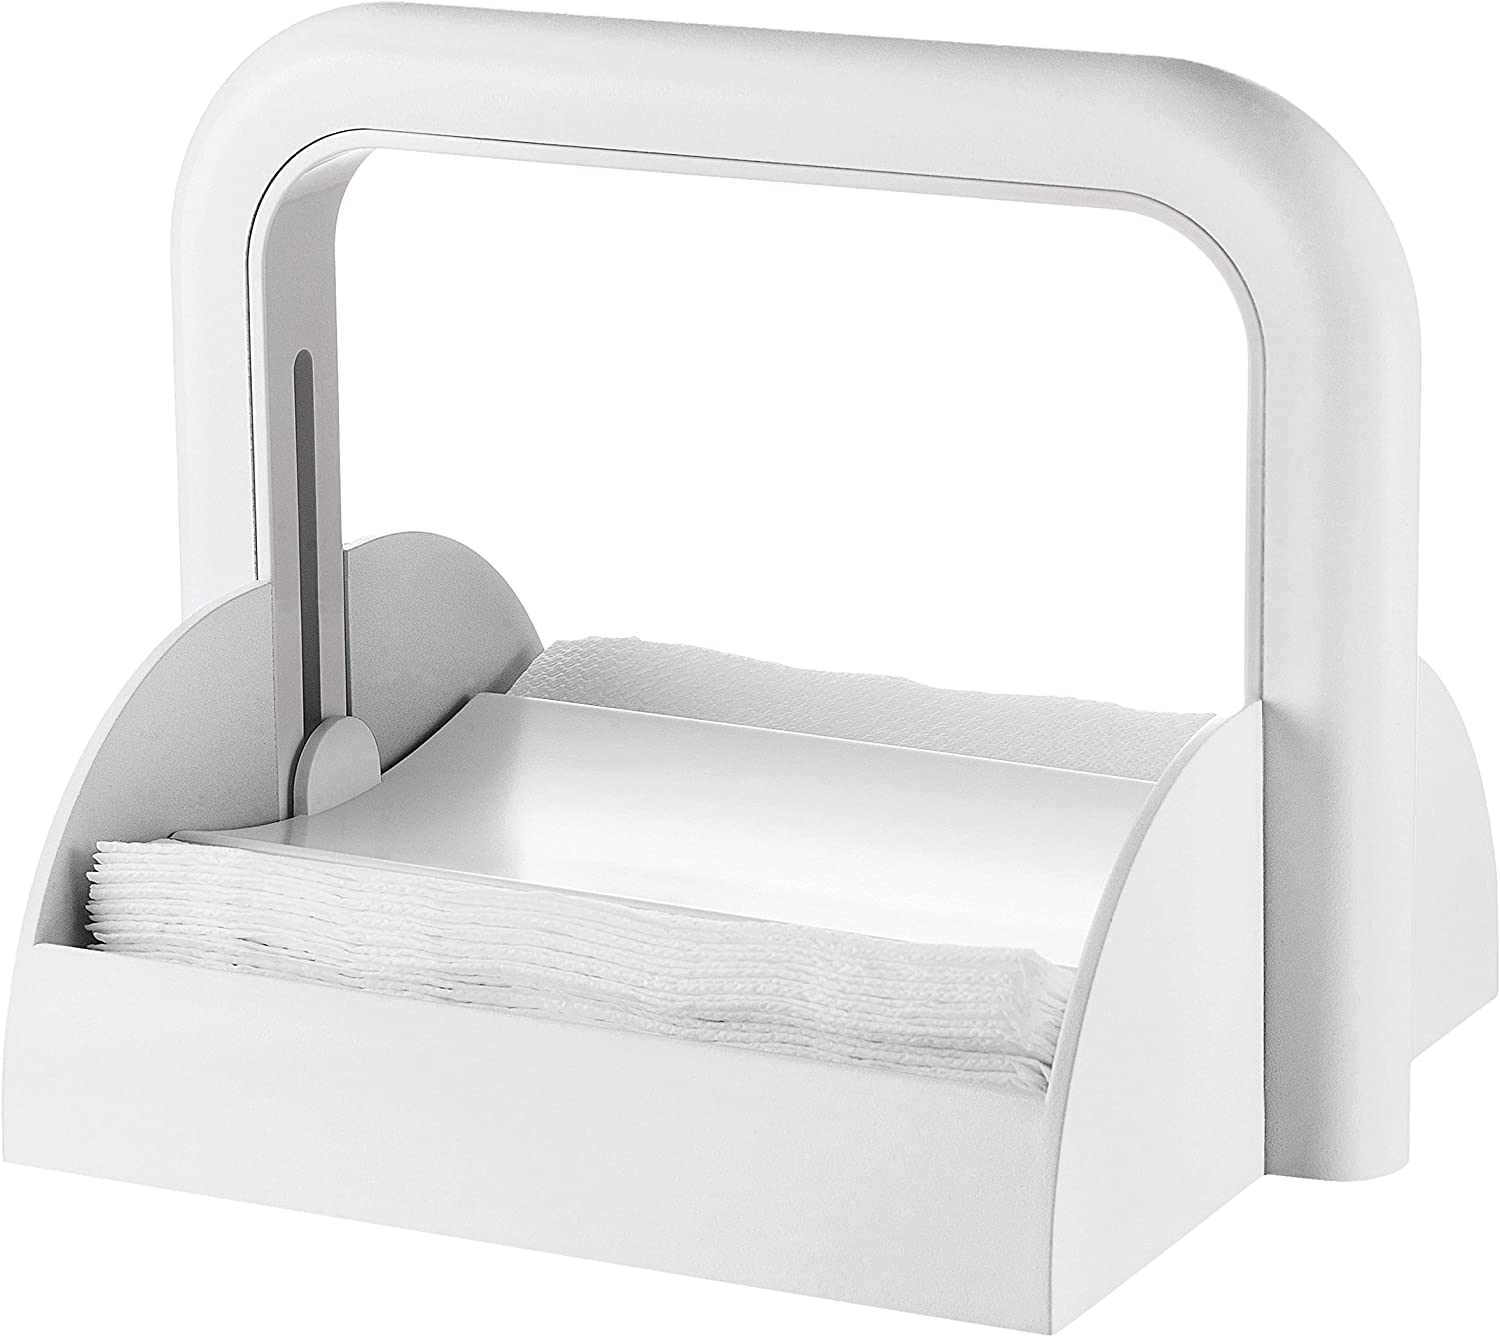 Guzzini Formas Casa 70055-11 Dispensador, Plástico, Color Blanco